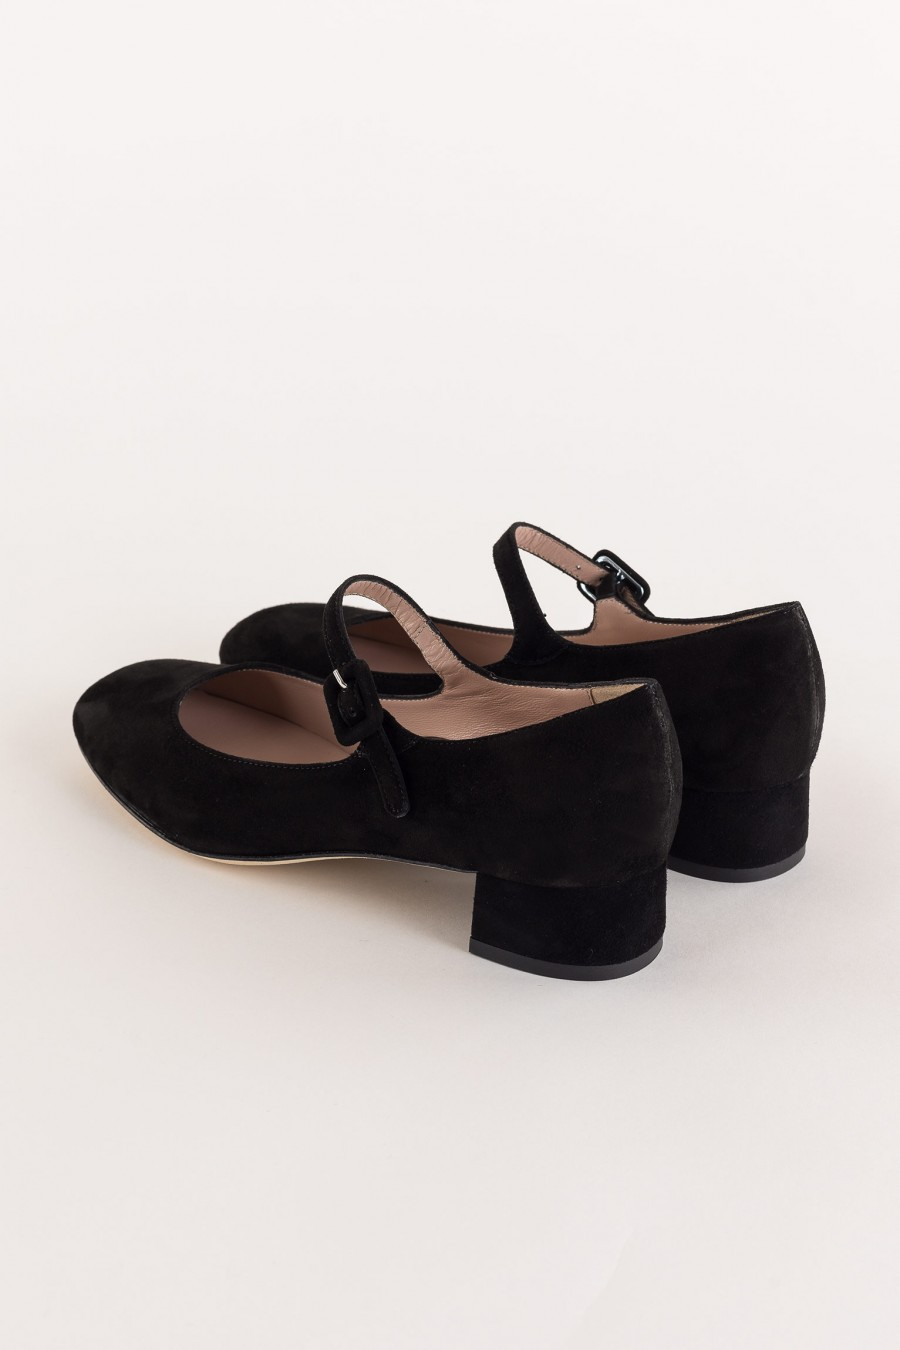 black mary jane with heel and strap